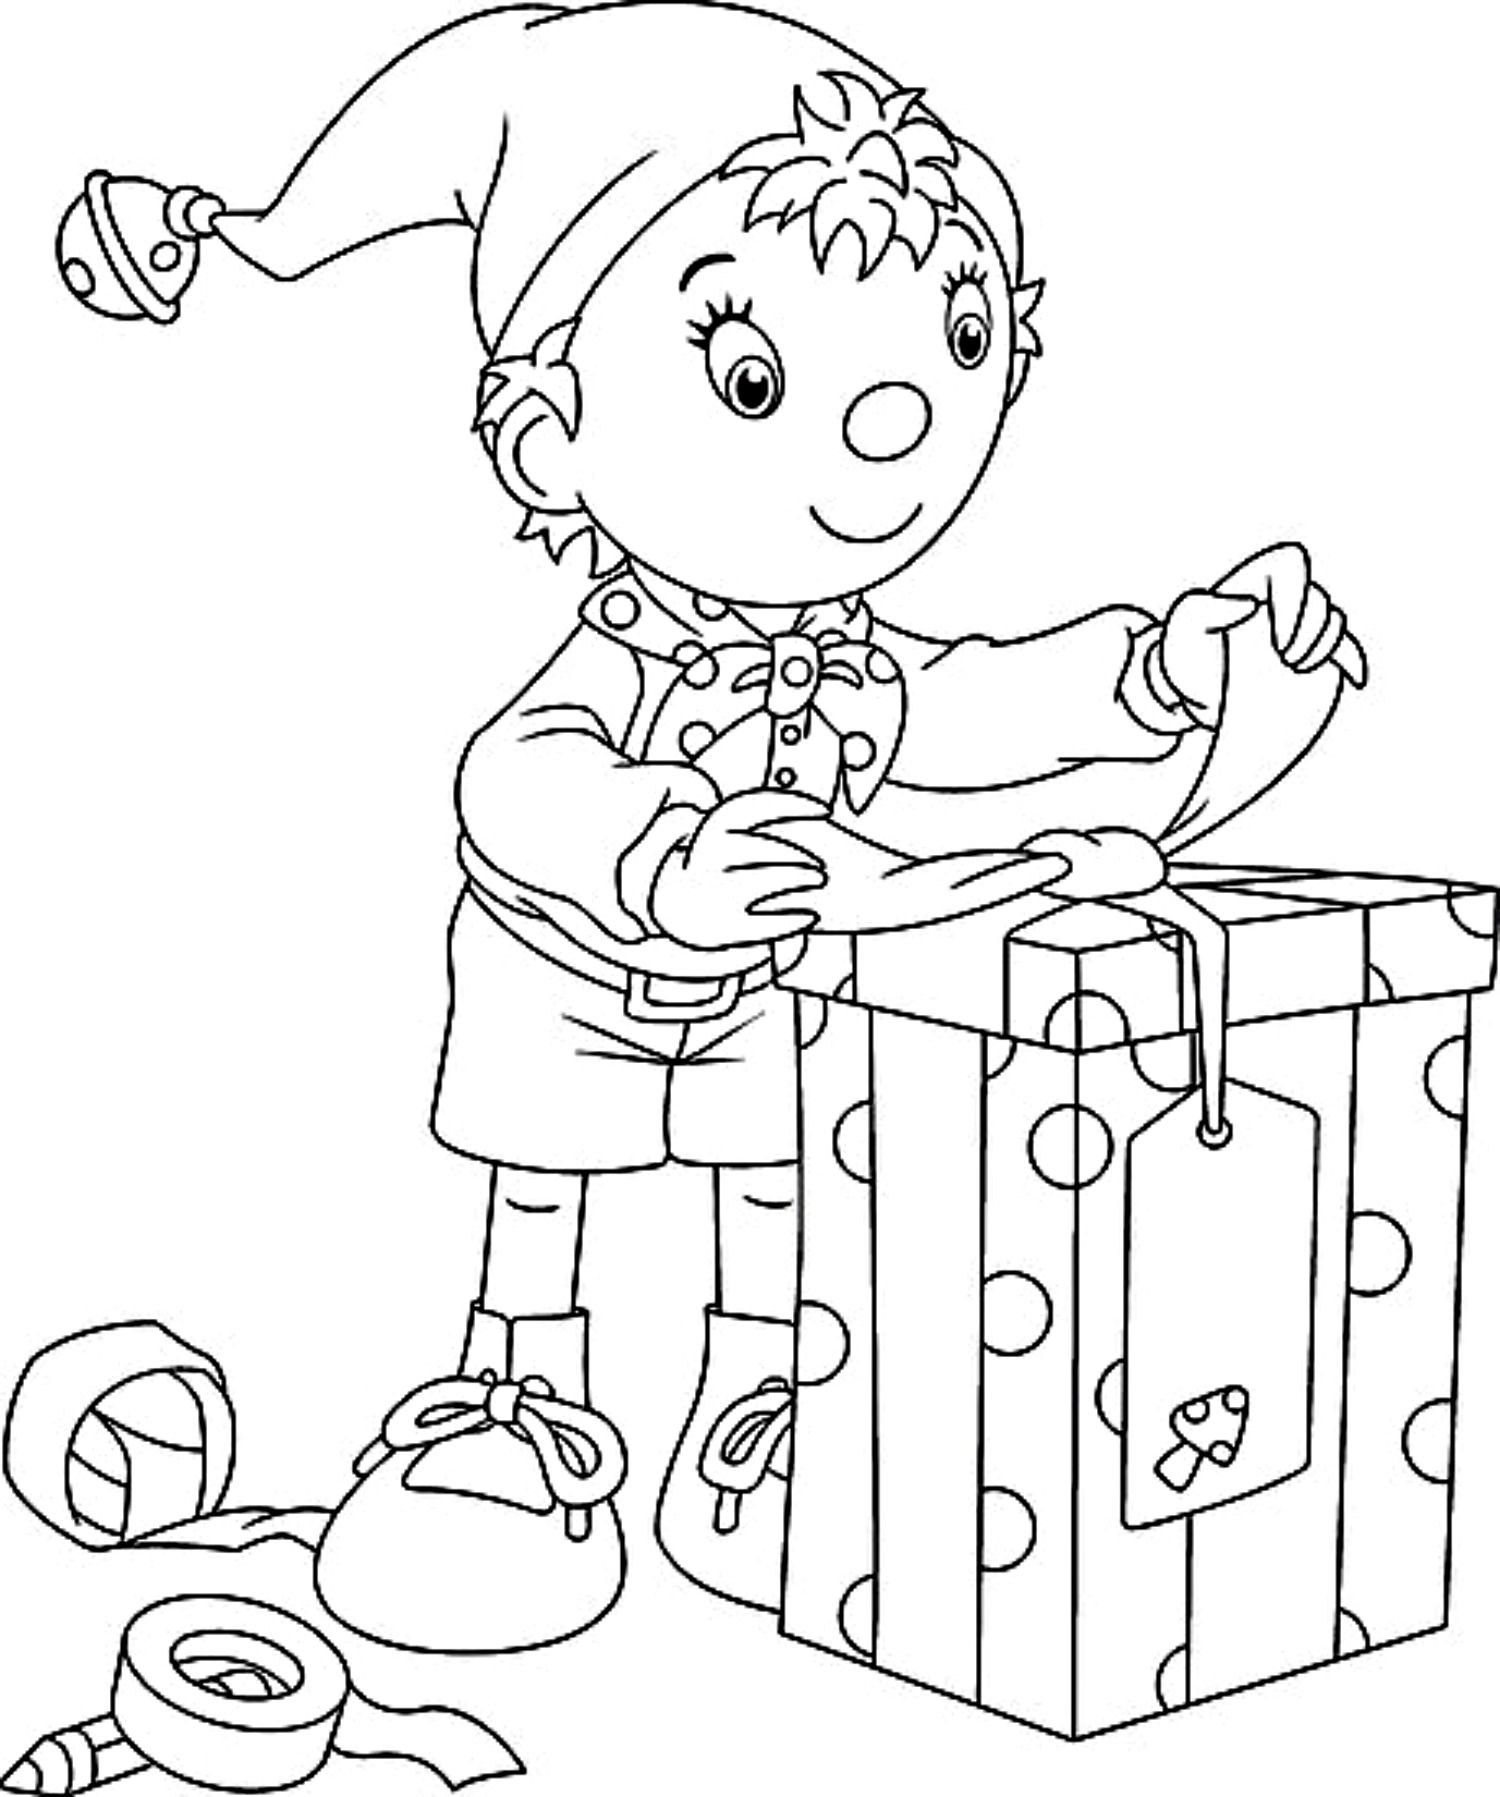 Christmas Elf Coloring Pages Free With CHRISTMAS COLORING PAGE Santa Song And Printable